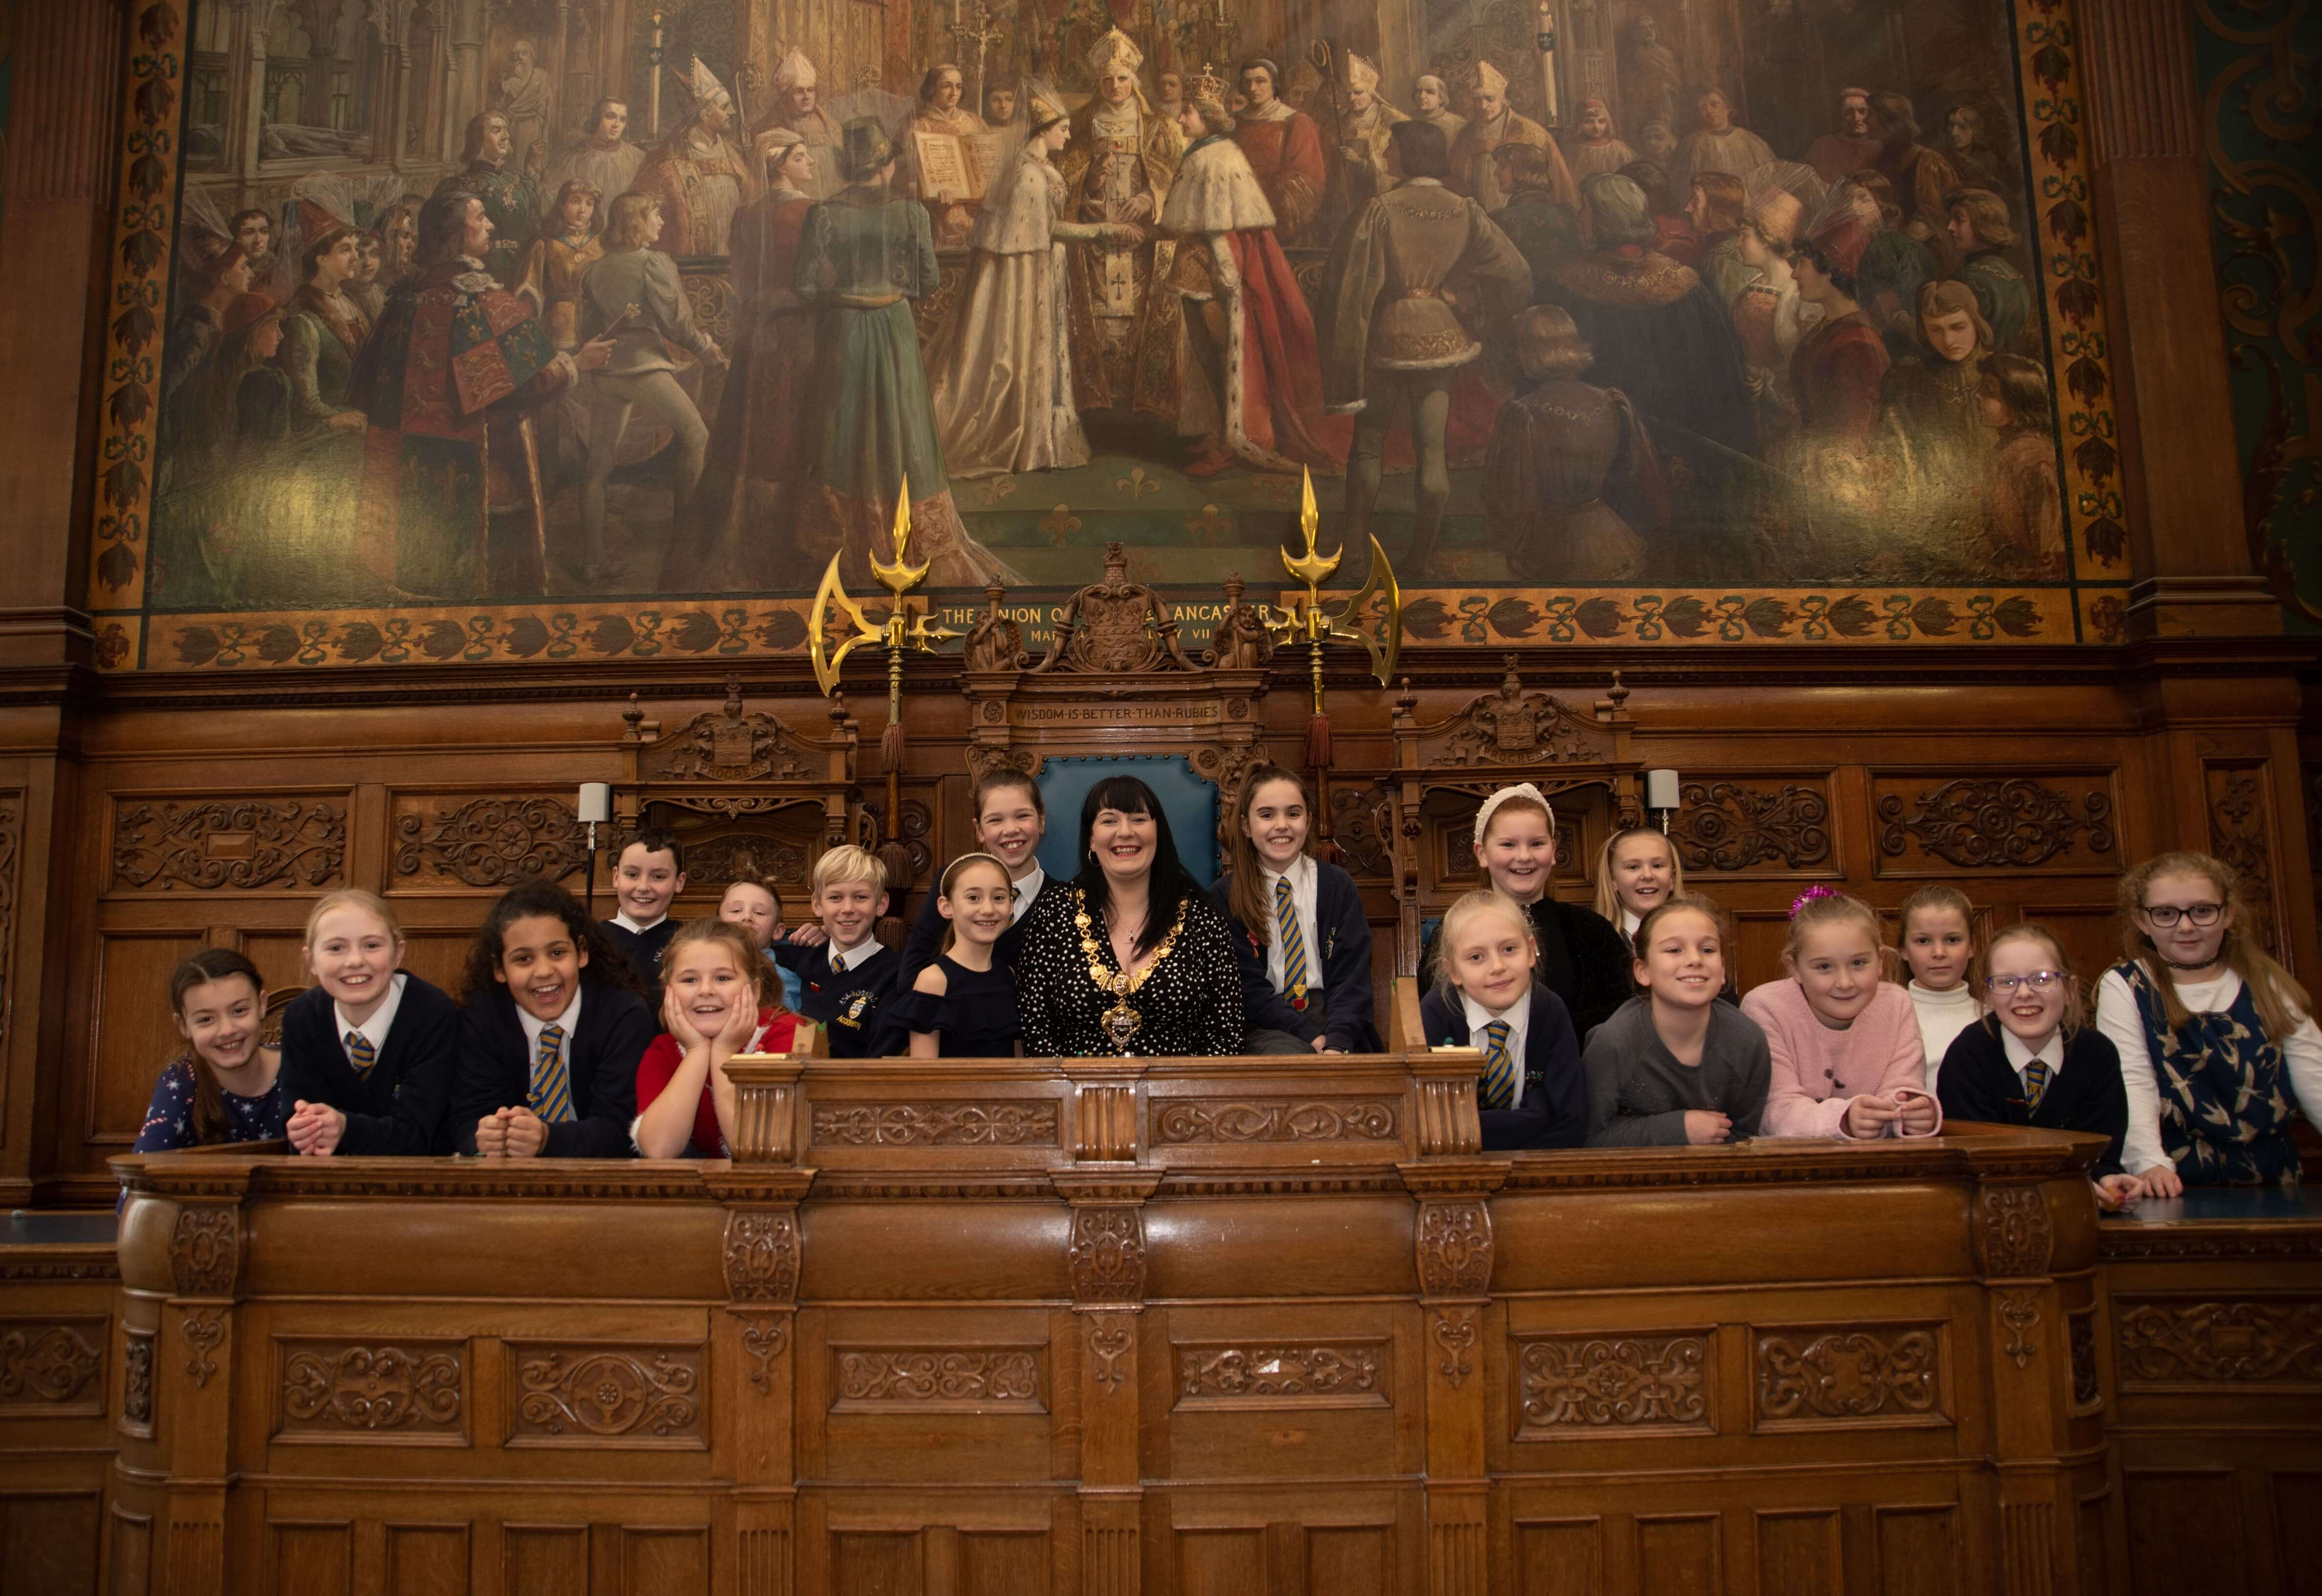 Mayor of Blackpool, Cllr Amy Cross with Anchorsholme Academy school choir in the Town Hall